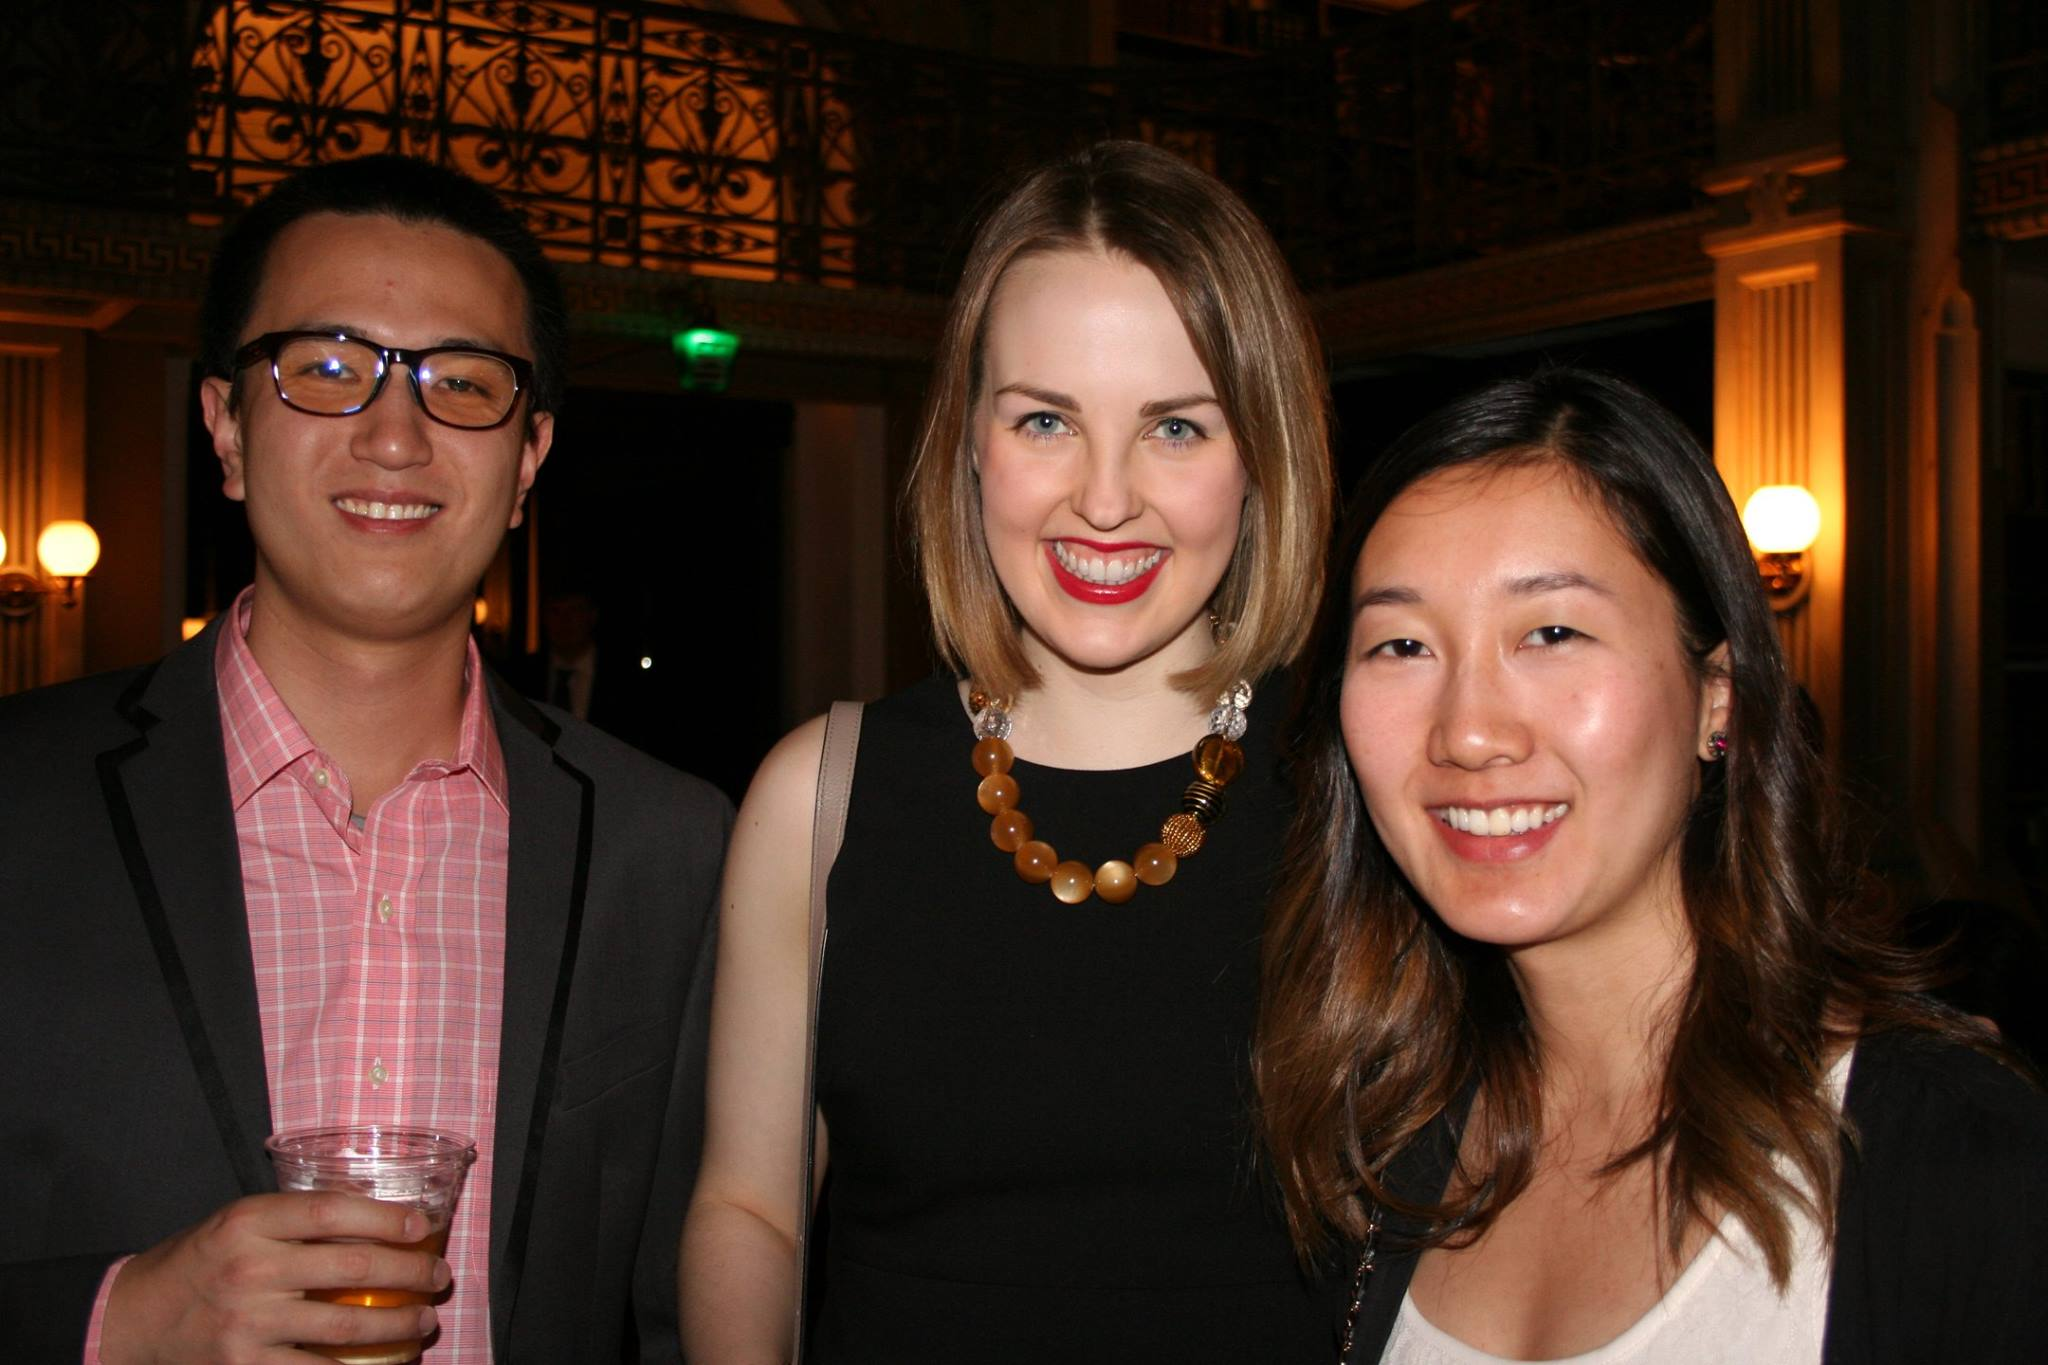 group picture of students at cocktail night smiling